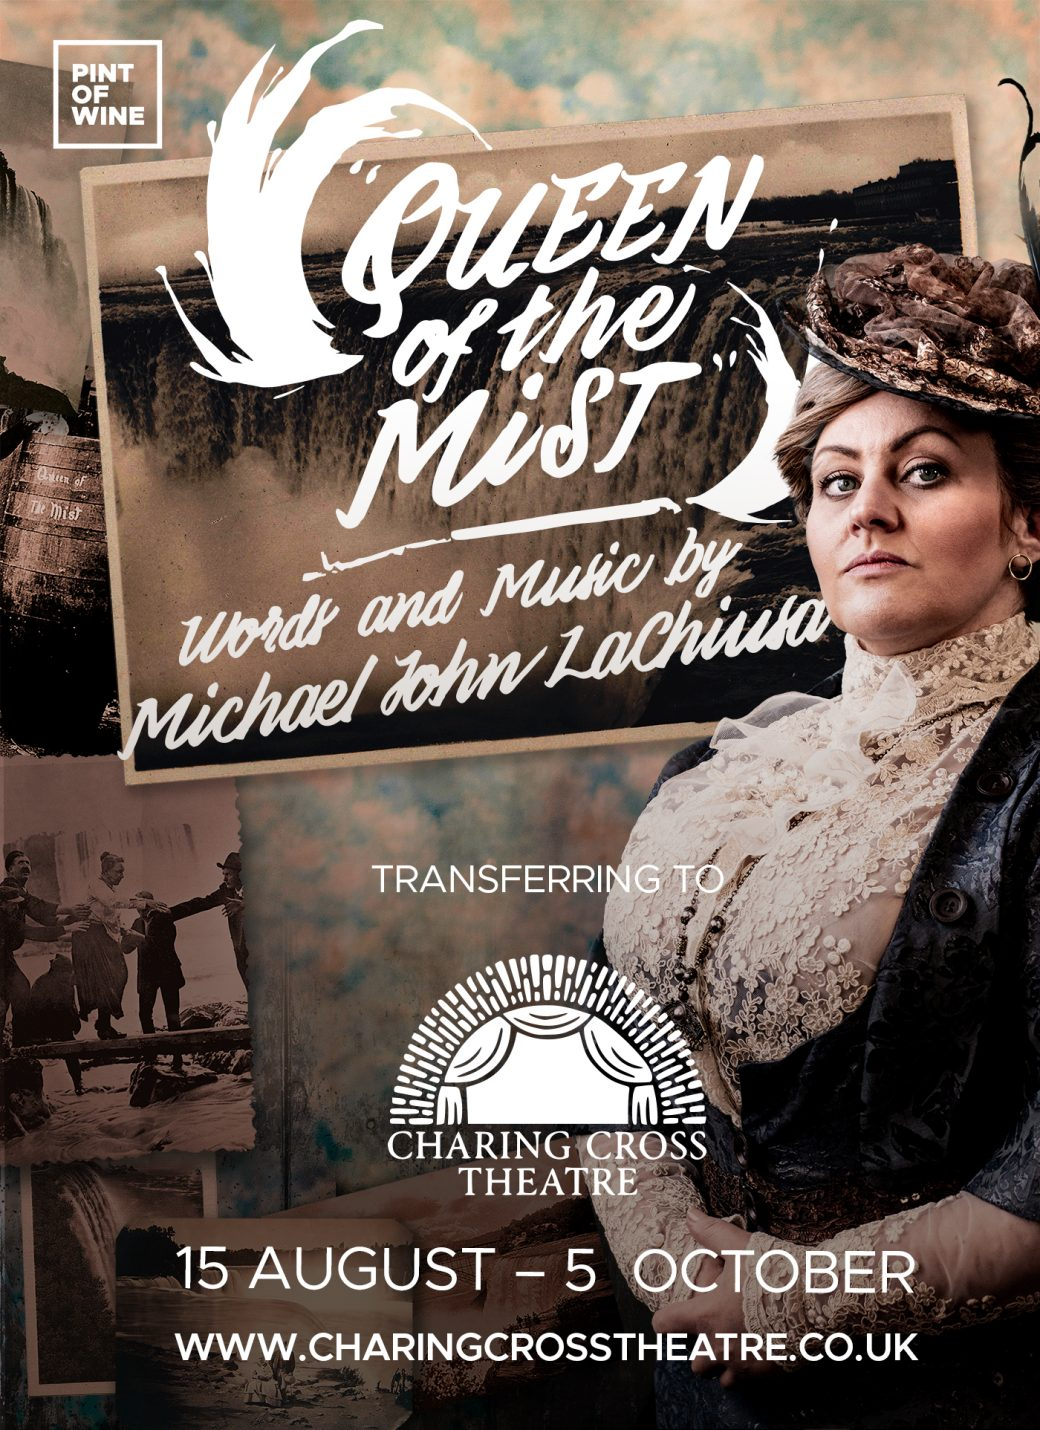 Queen Of T eh Mist transferring to the Charing Cross Theatre